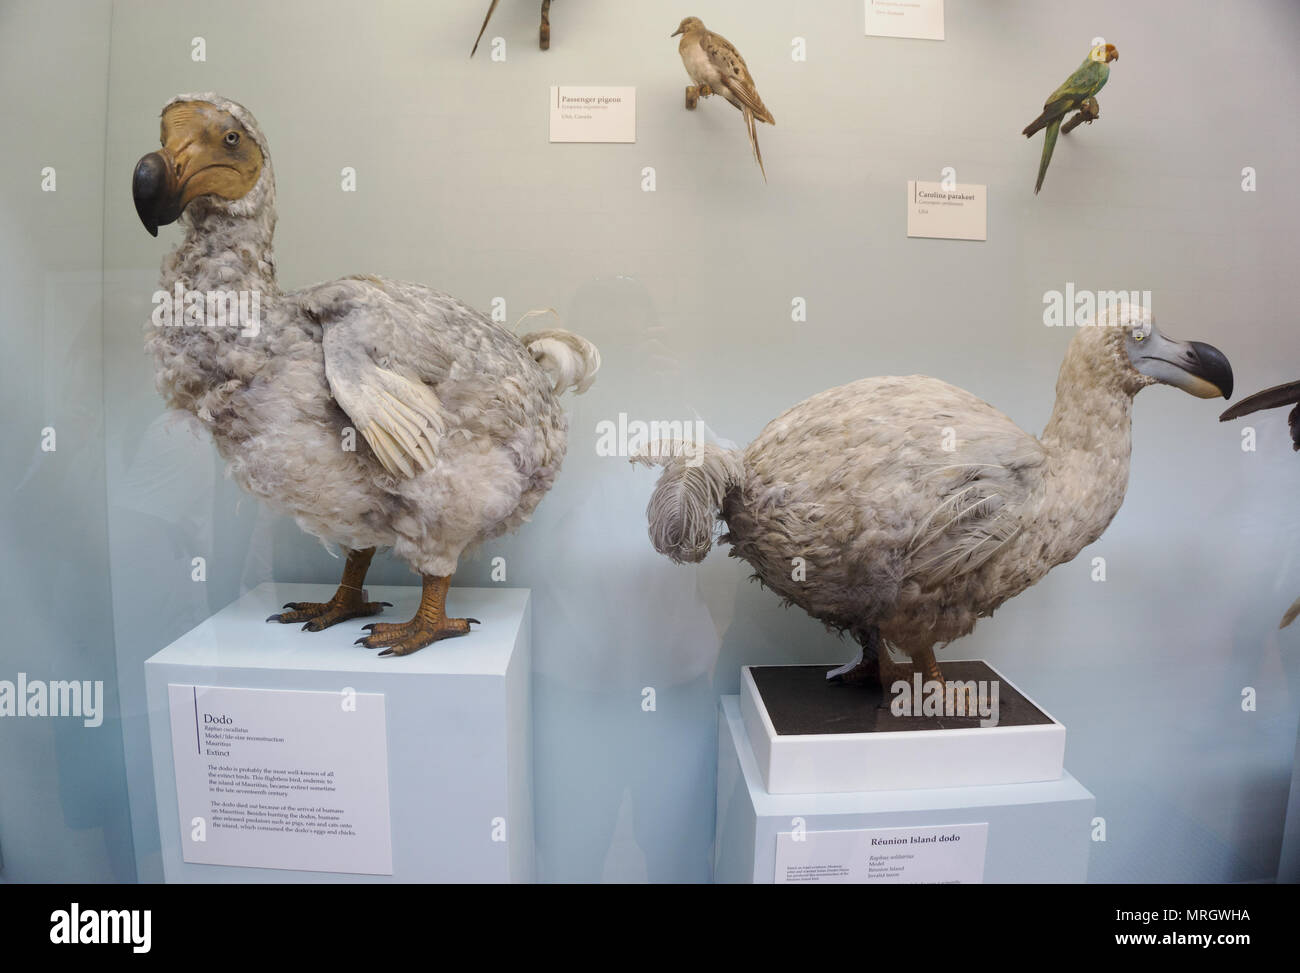 Extinct specimens of Mauritius Dodo, Raphus cucullatus, and Reunion Island dodo, Raphus solitarius models, Natural History Museum London England - Stock Image